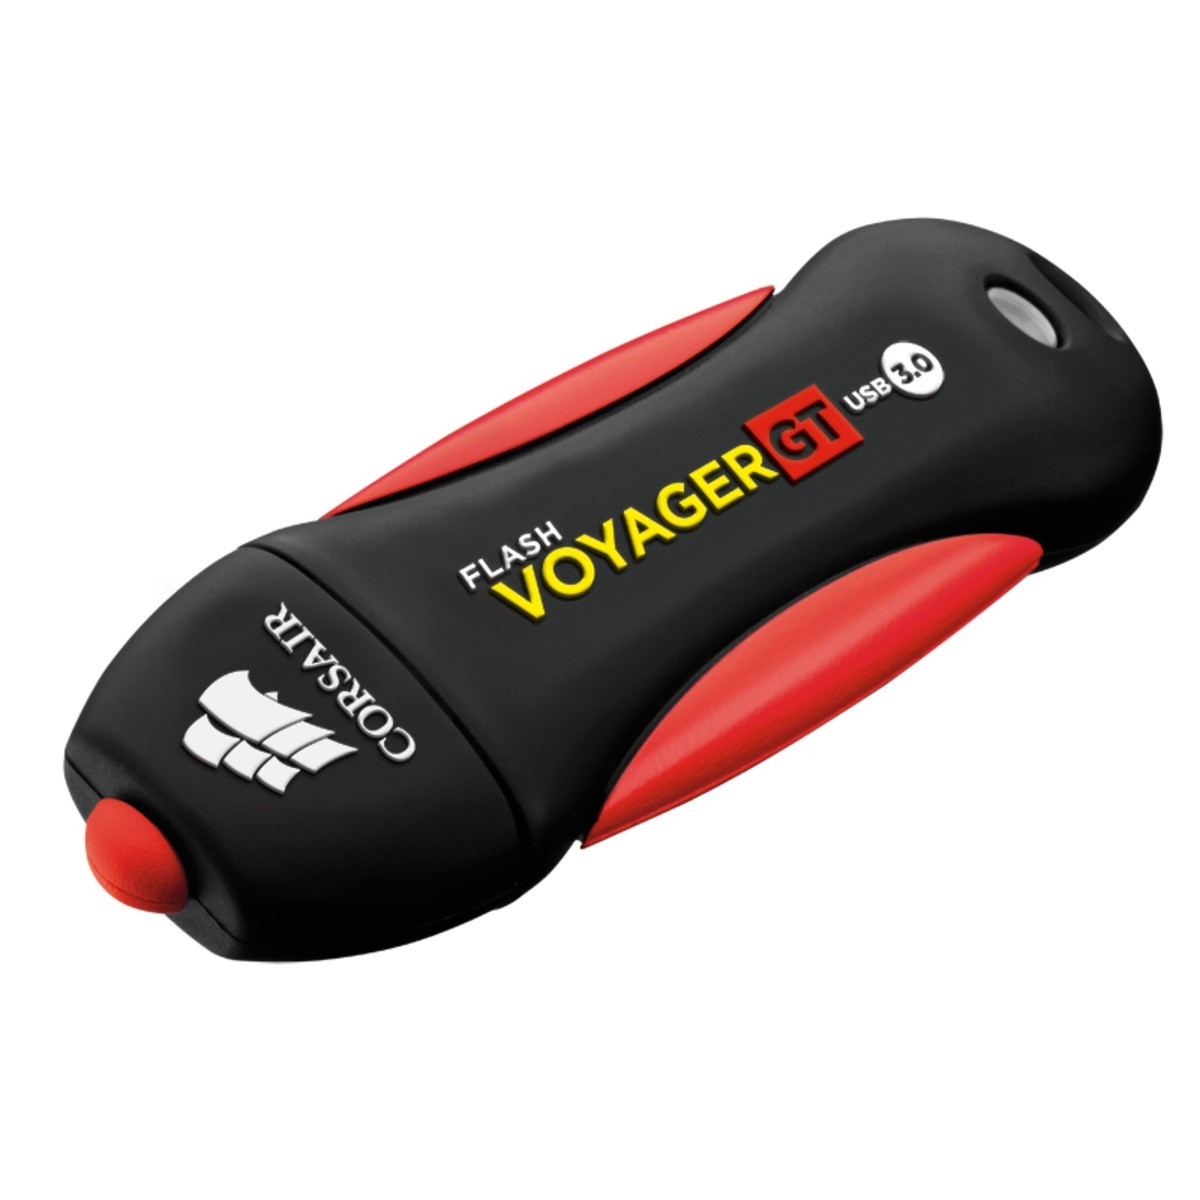 pendrive-flash-voyager-gt-256gb-usb3-0-390200-mbs